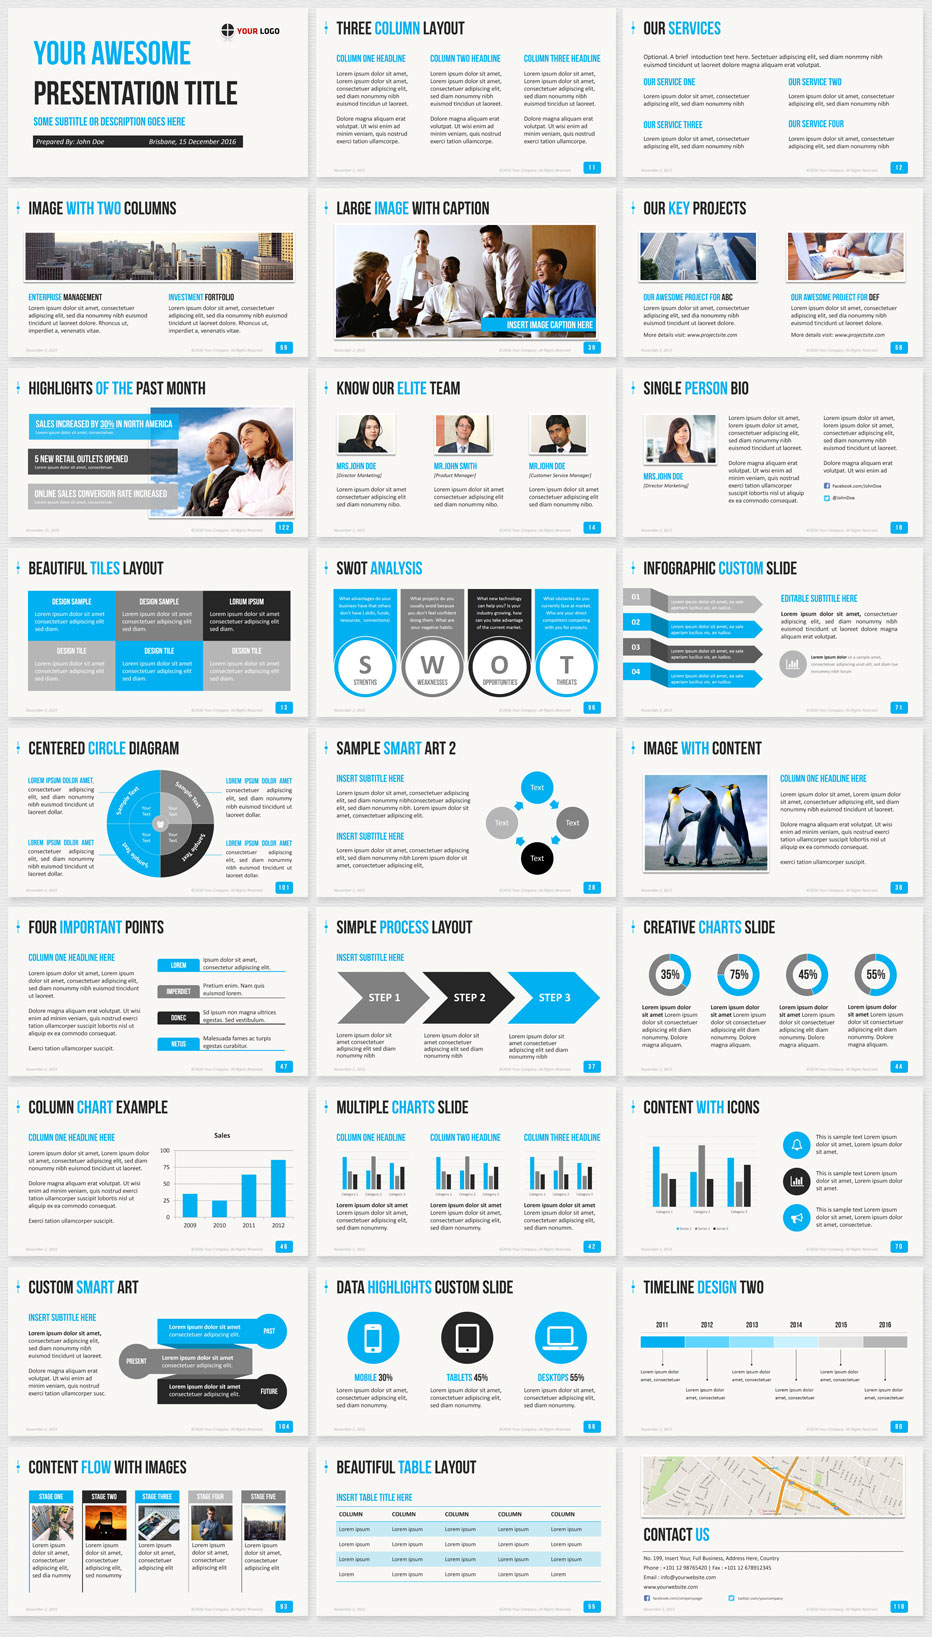 Professional presentation templates or free powerpoint themes professional presentation templates contain separate masters for multiple slide design layouts friedricerecipe